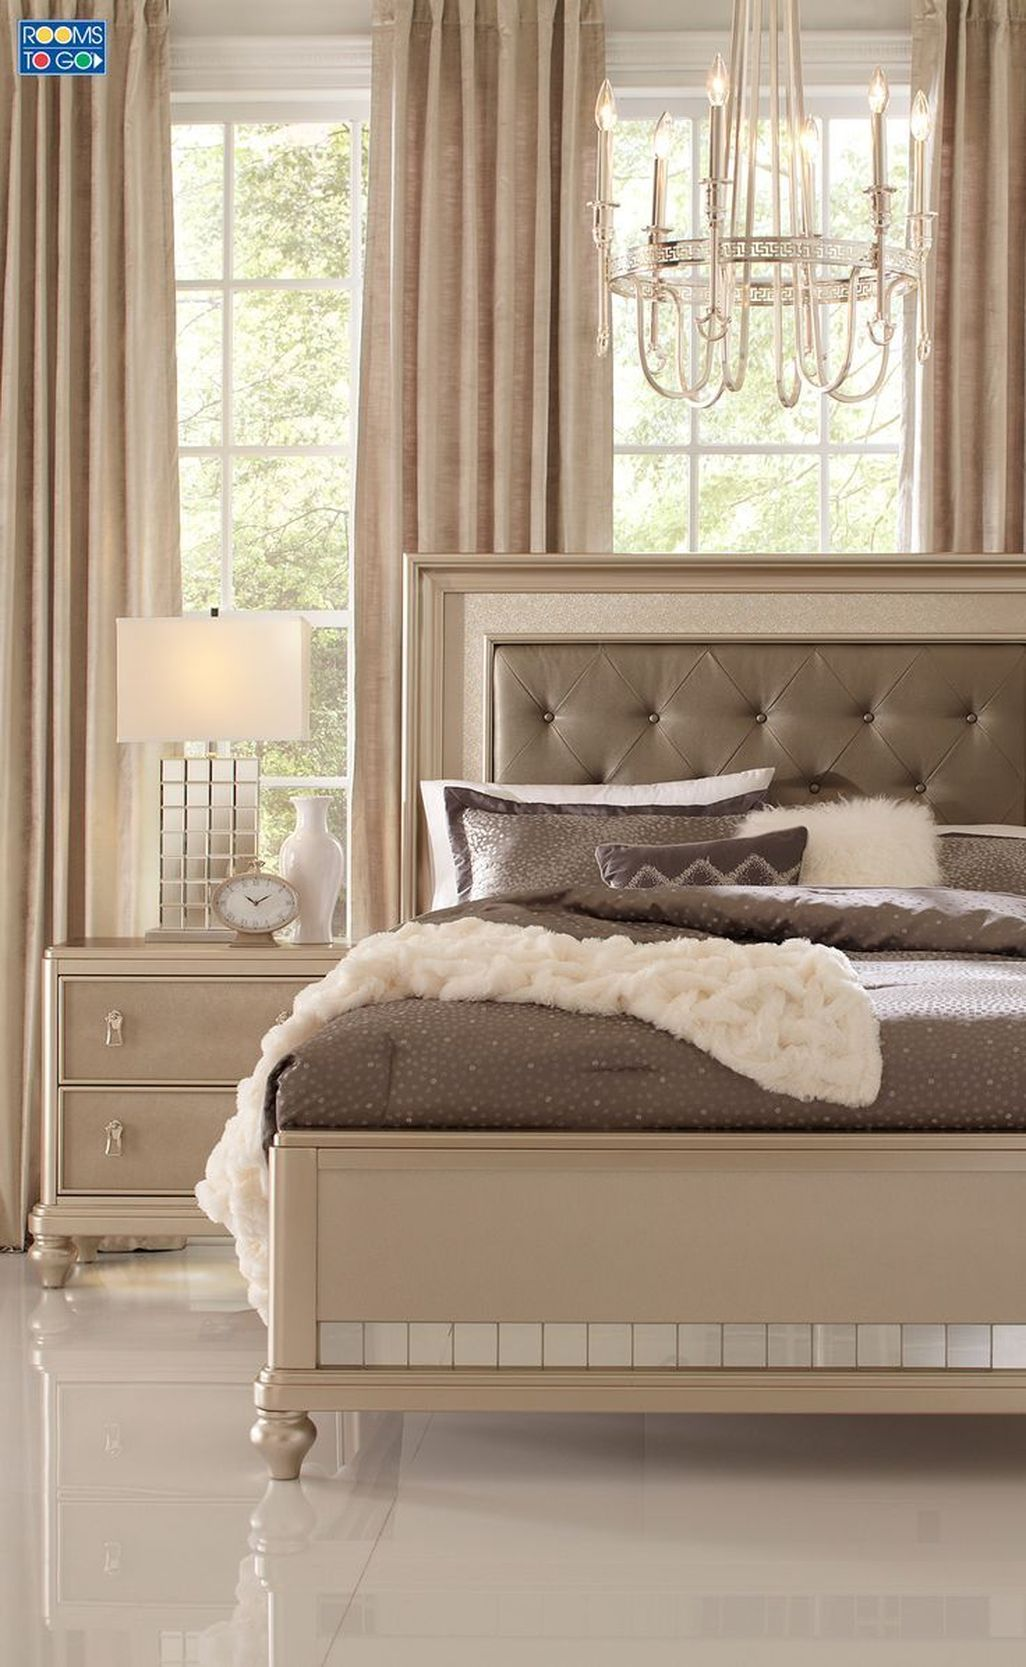 Affordable Luxury Bedroom Sets Cool 46 Luxury Champagne Bedroom Ideas. More at https:--trend4homy.com